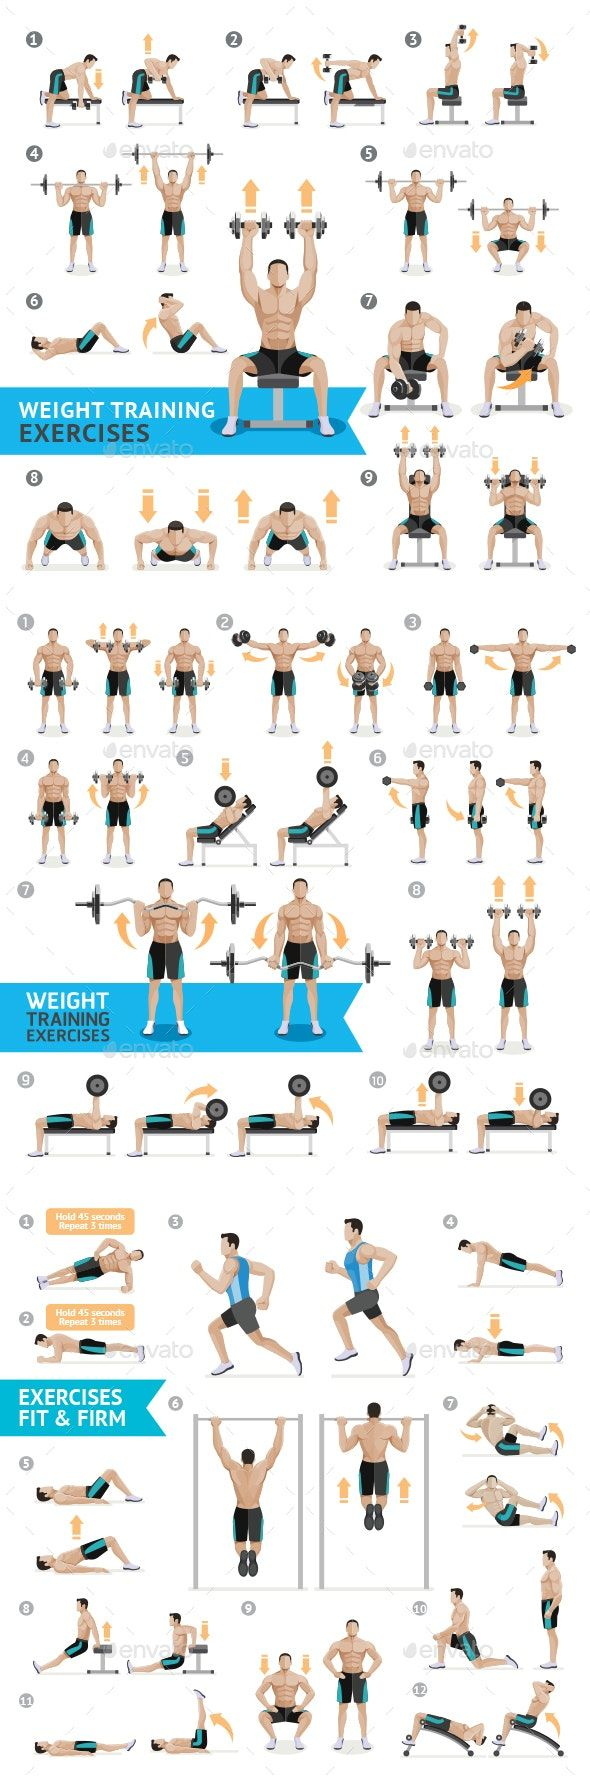 Dumbbell Exercises and Workouts Weight Training by graphixmania | GraphicRiver #dumbbellexercises